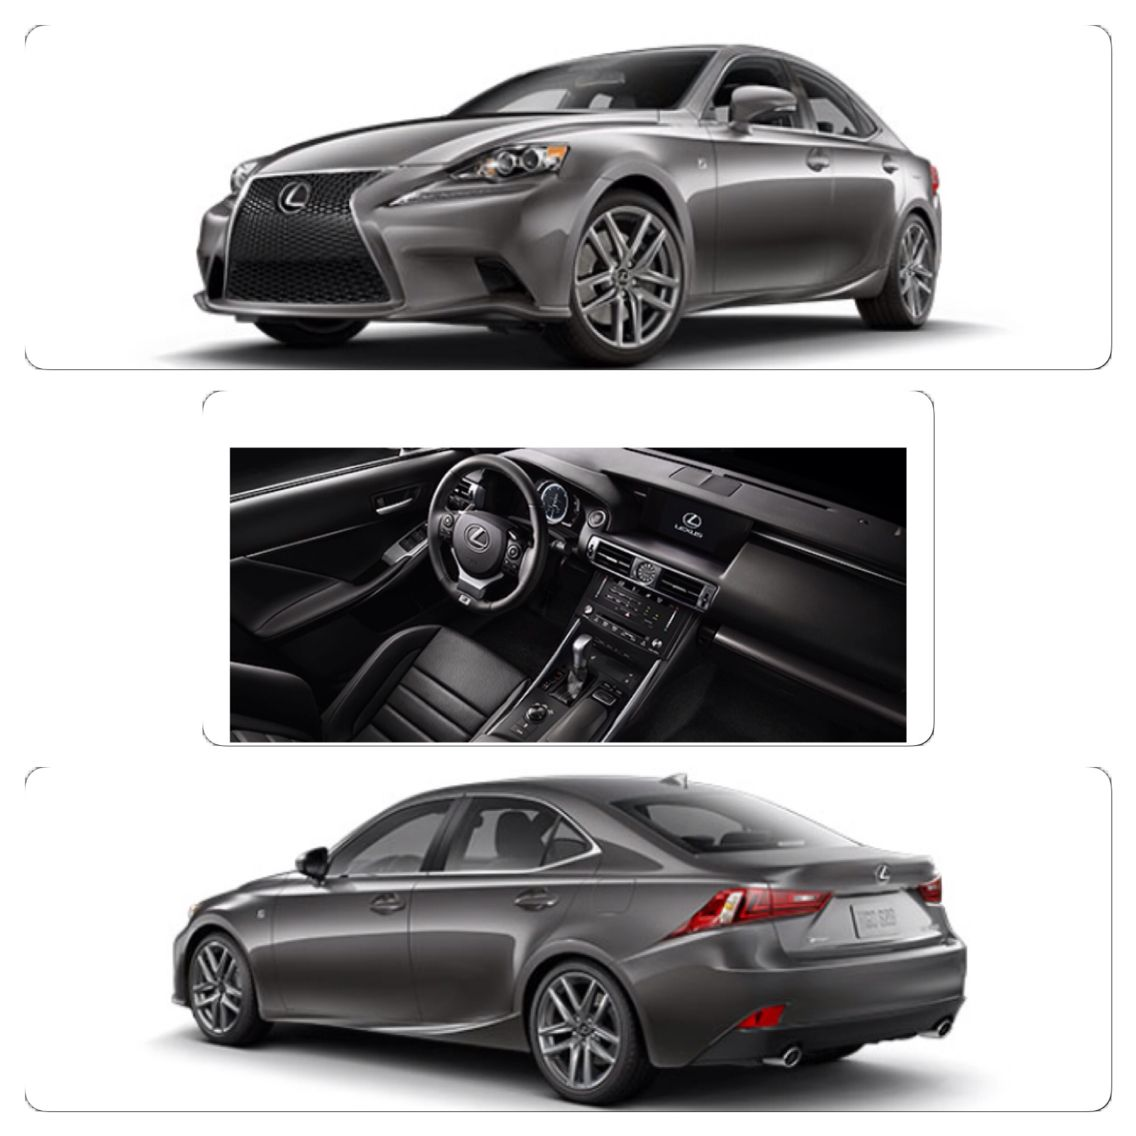 Lexus IS350 F Sport. Dream car, coming soon. Sports cars